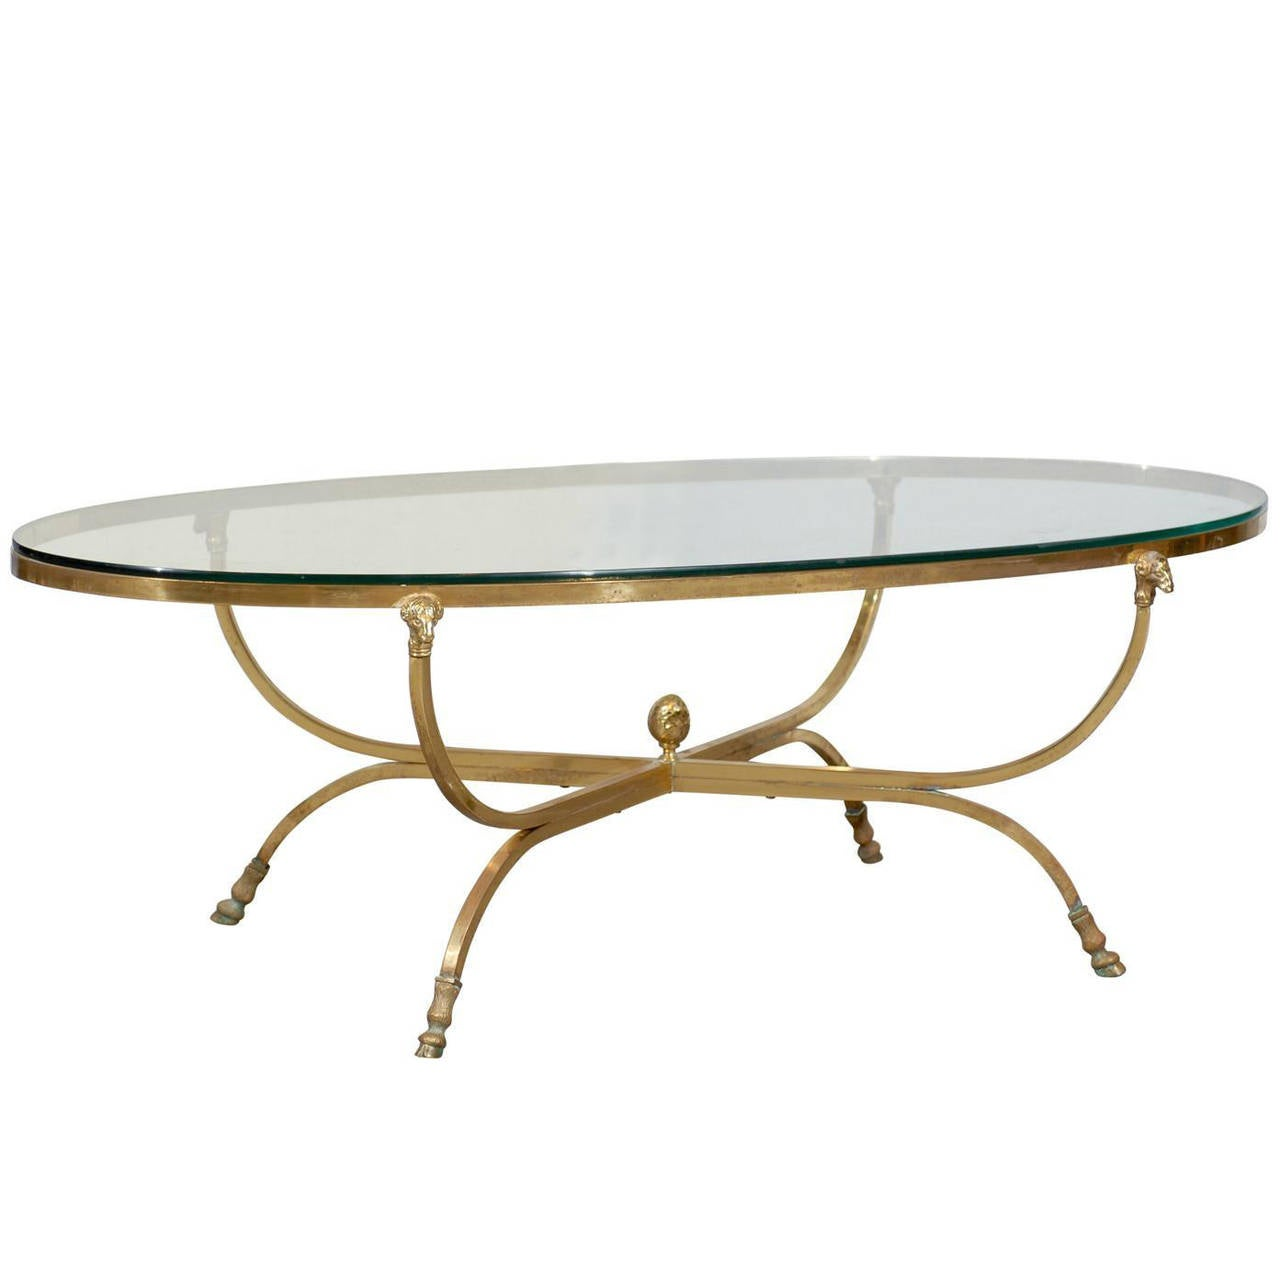 Oval brass and glass coffee table with ram 39 s heads at 1stdibs Glass oval coffee tables